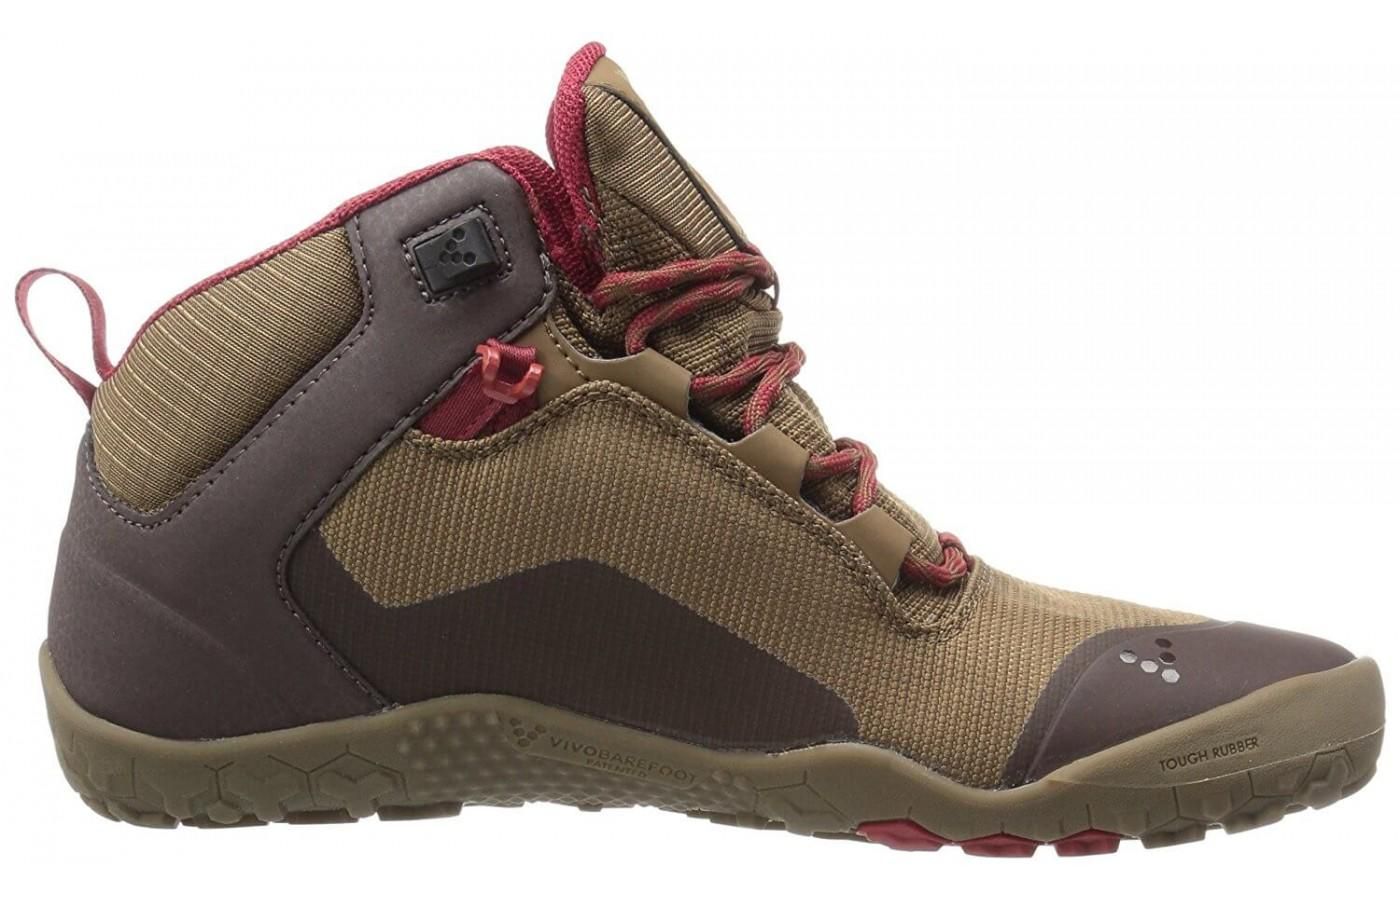 Water resistant and breathable, this boot offers it all.